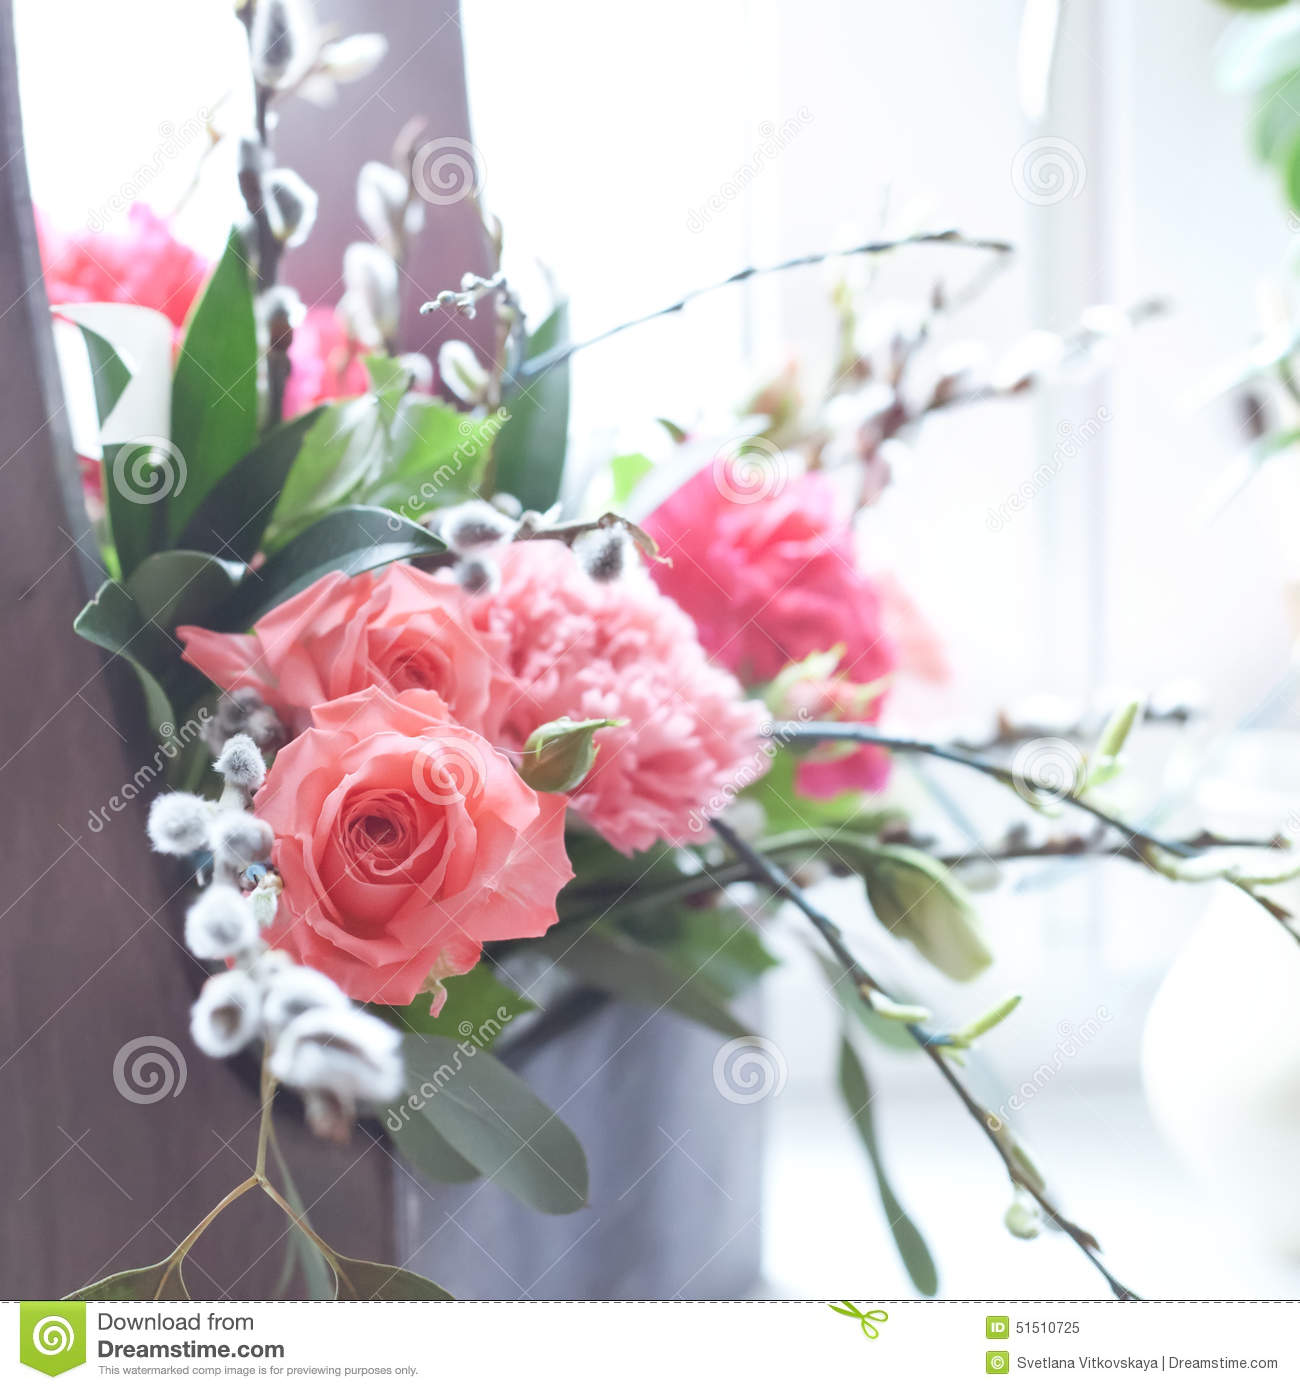 Beautiful fresh flowers in a wooden box natural light setting stock beautiful fresh flowers in a wooden box natural light setting royalty free stock photo download beautiful fresh flowers izmirmasajfo